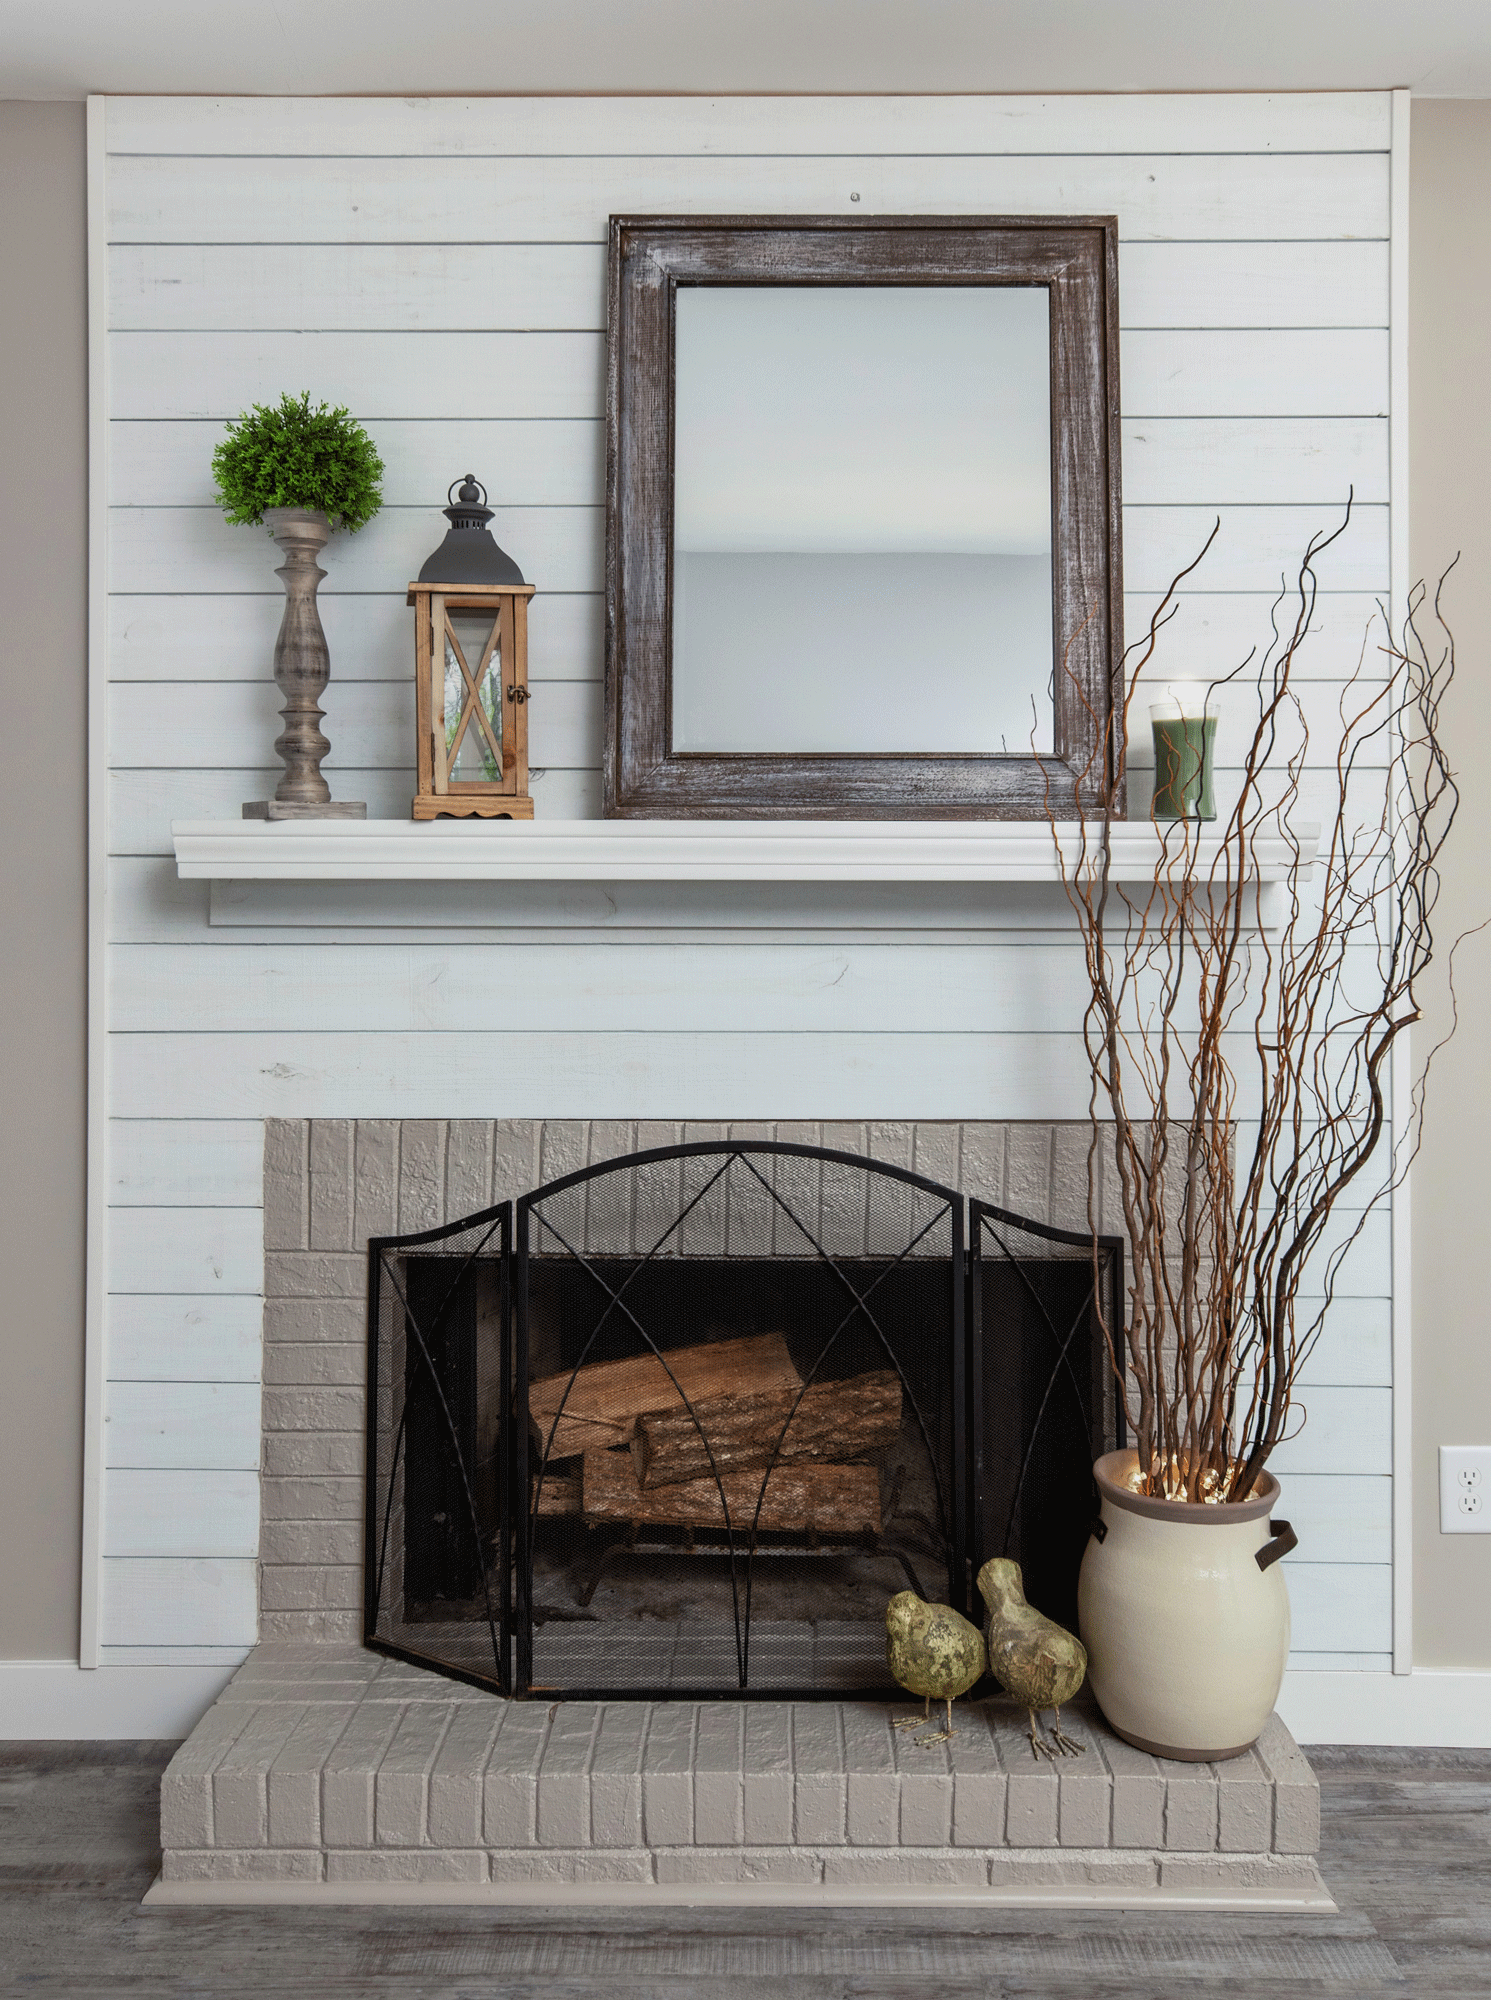 Fireplace mantle decor with branches, rustic frames, lantern